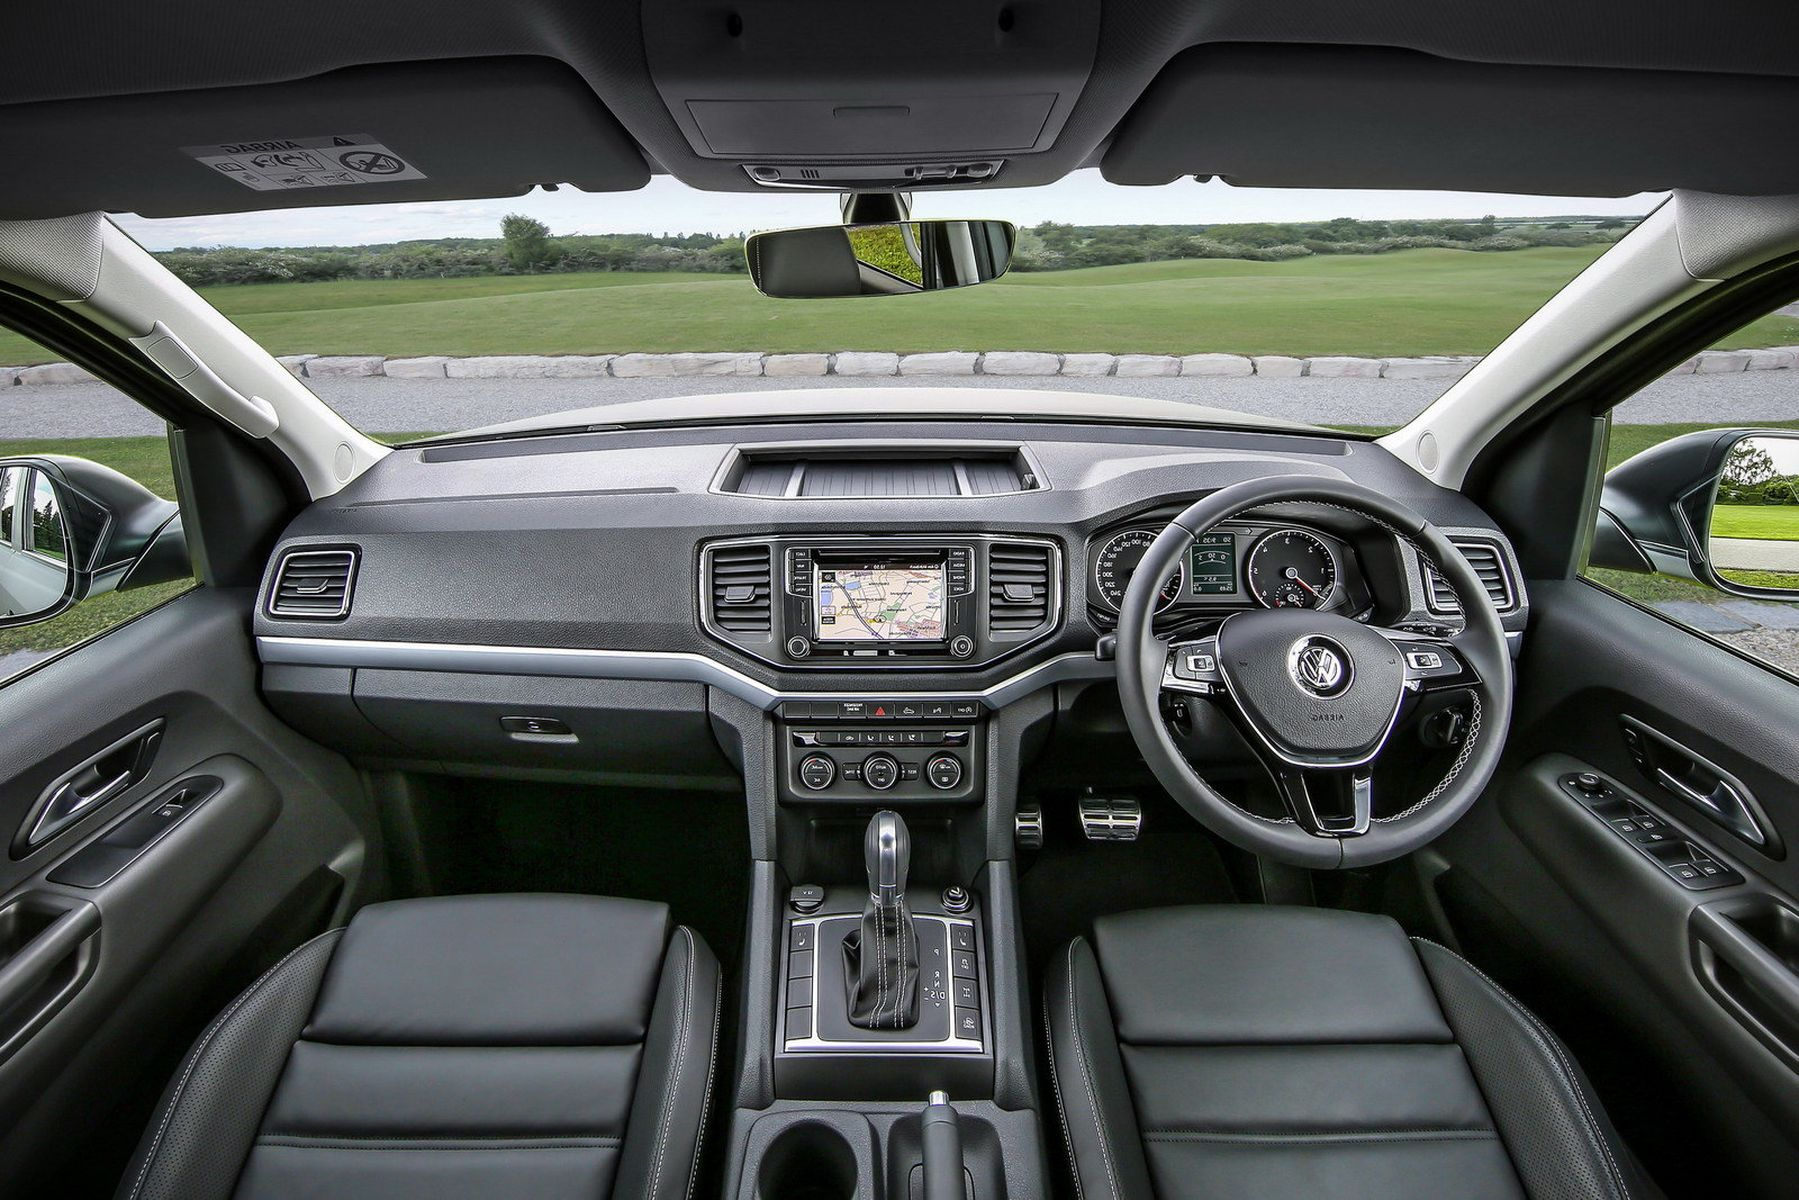 2018 Volkswagen Amarok interior photos